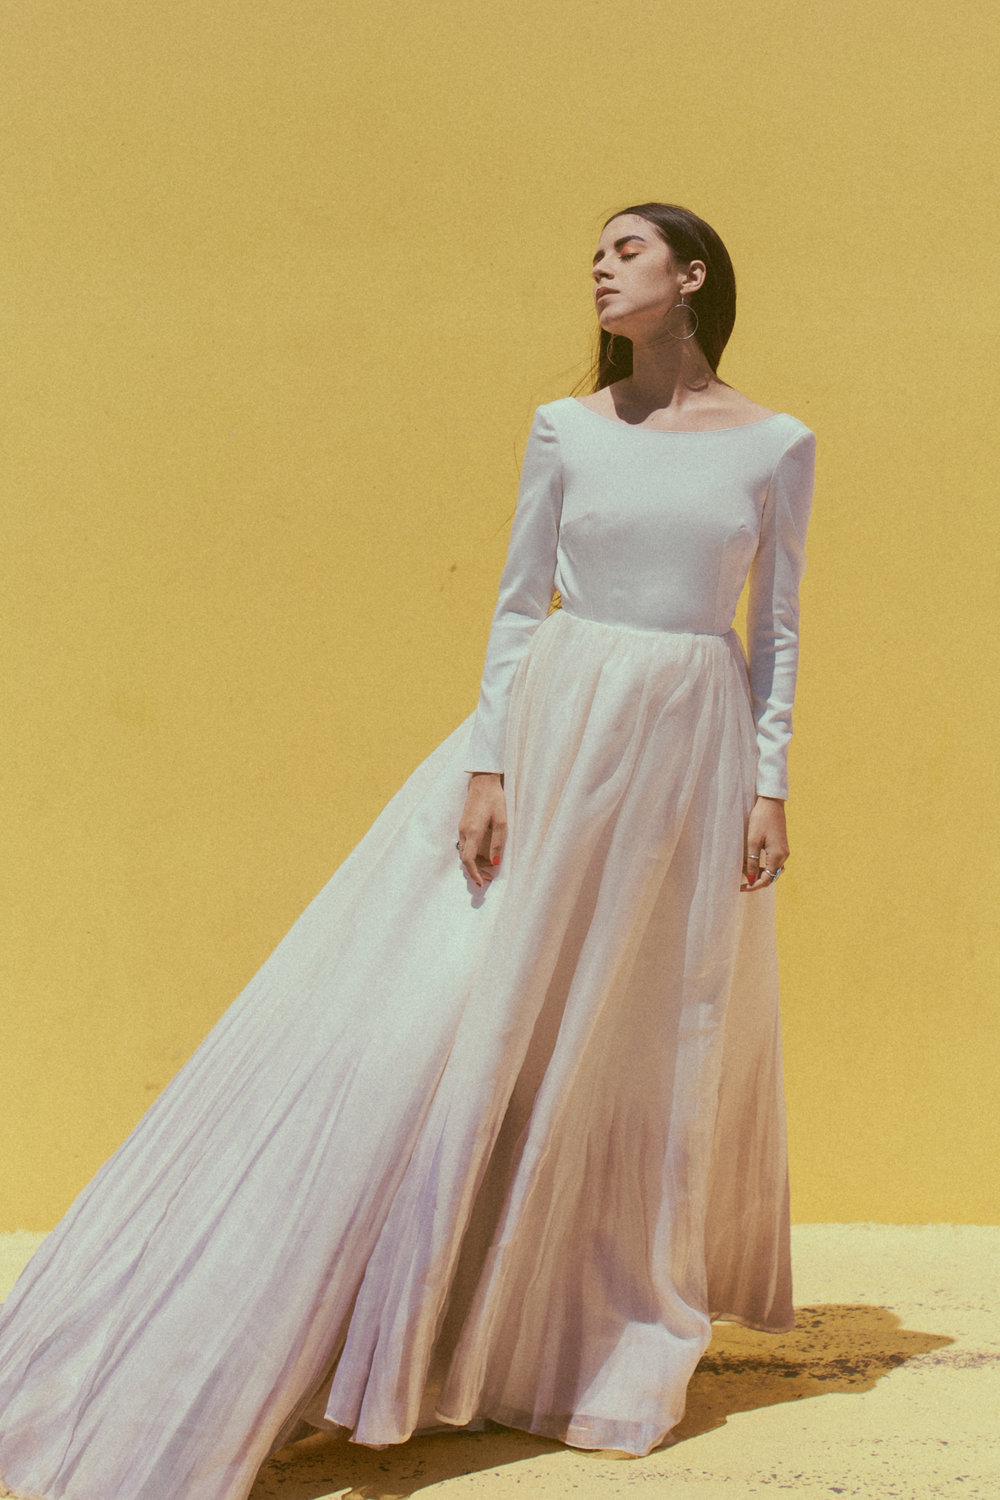 Lynn by Chantel Lauren hand painted wedding gown silk satin organza a line modern long sleeve crepe